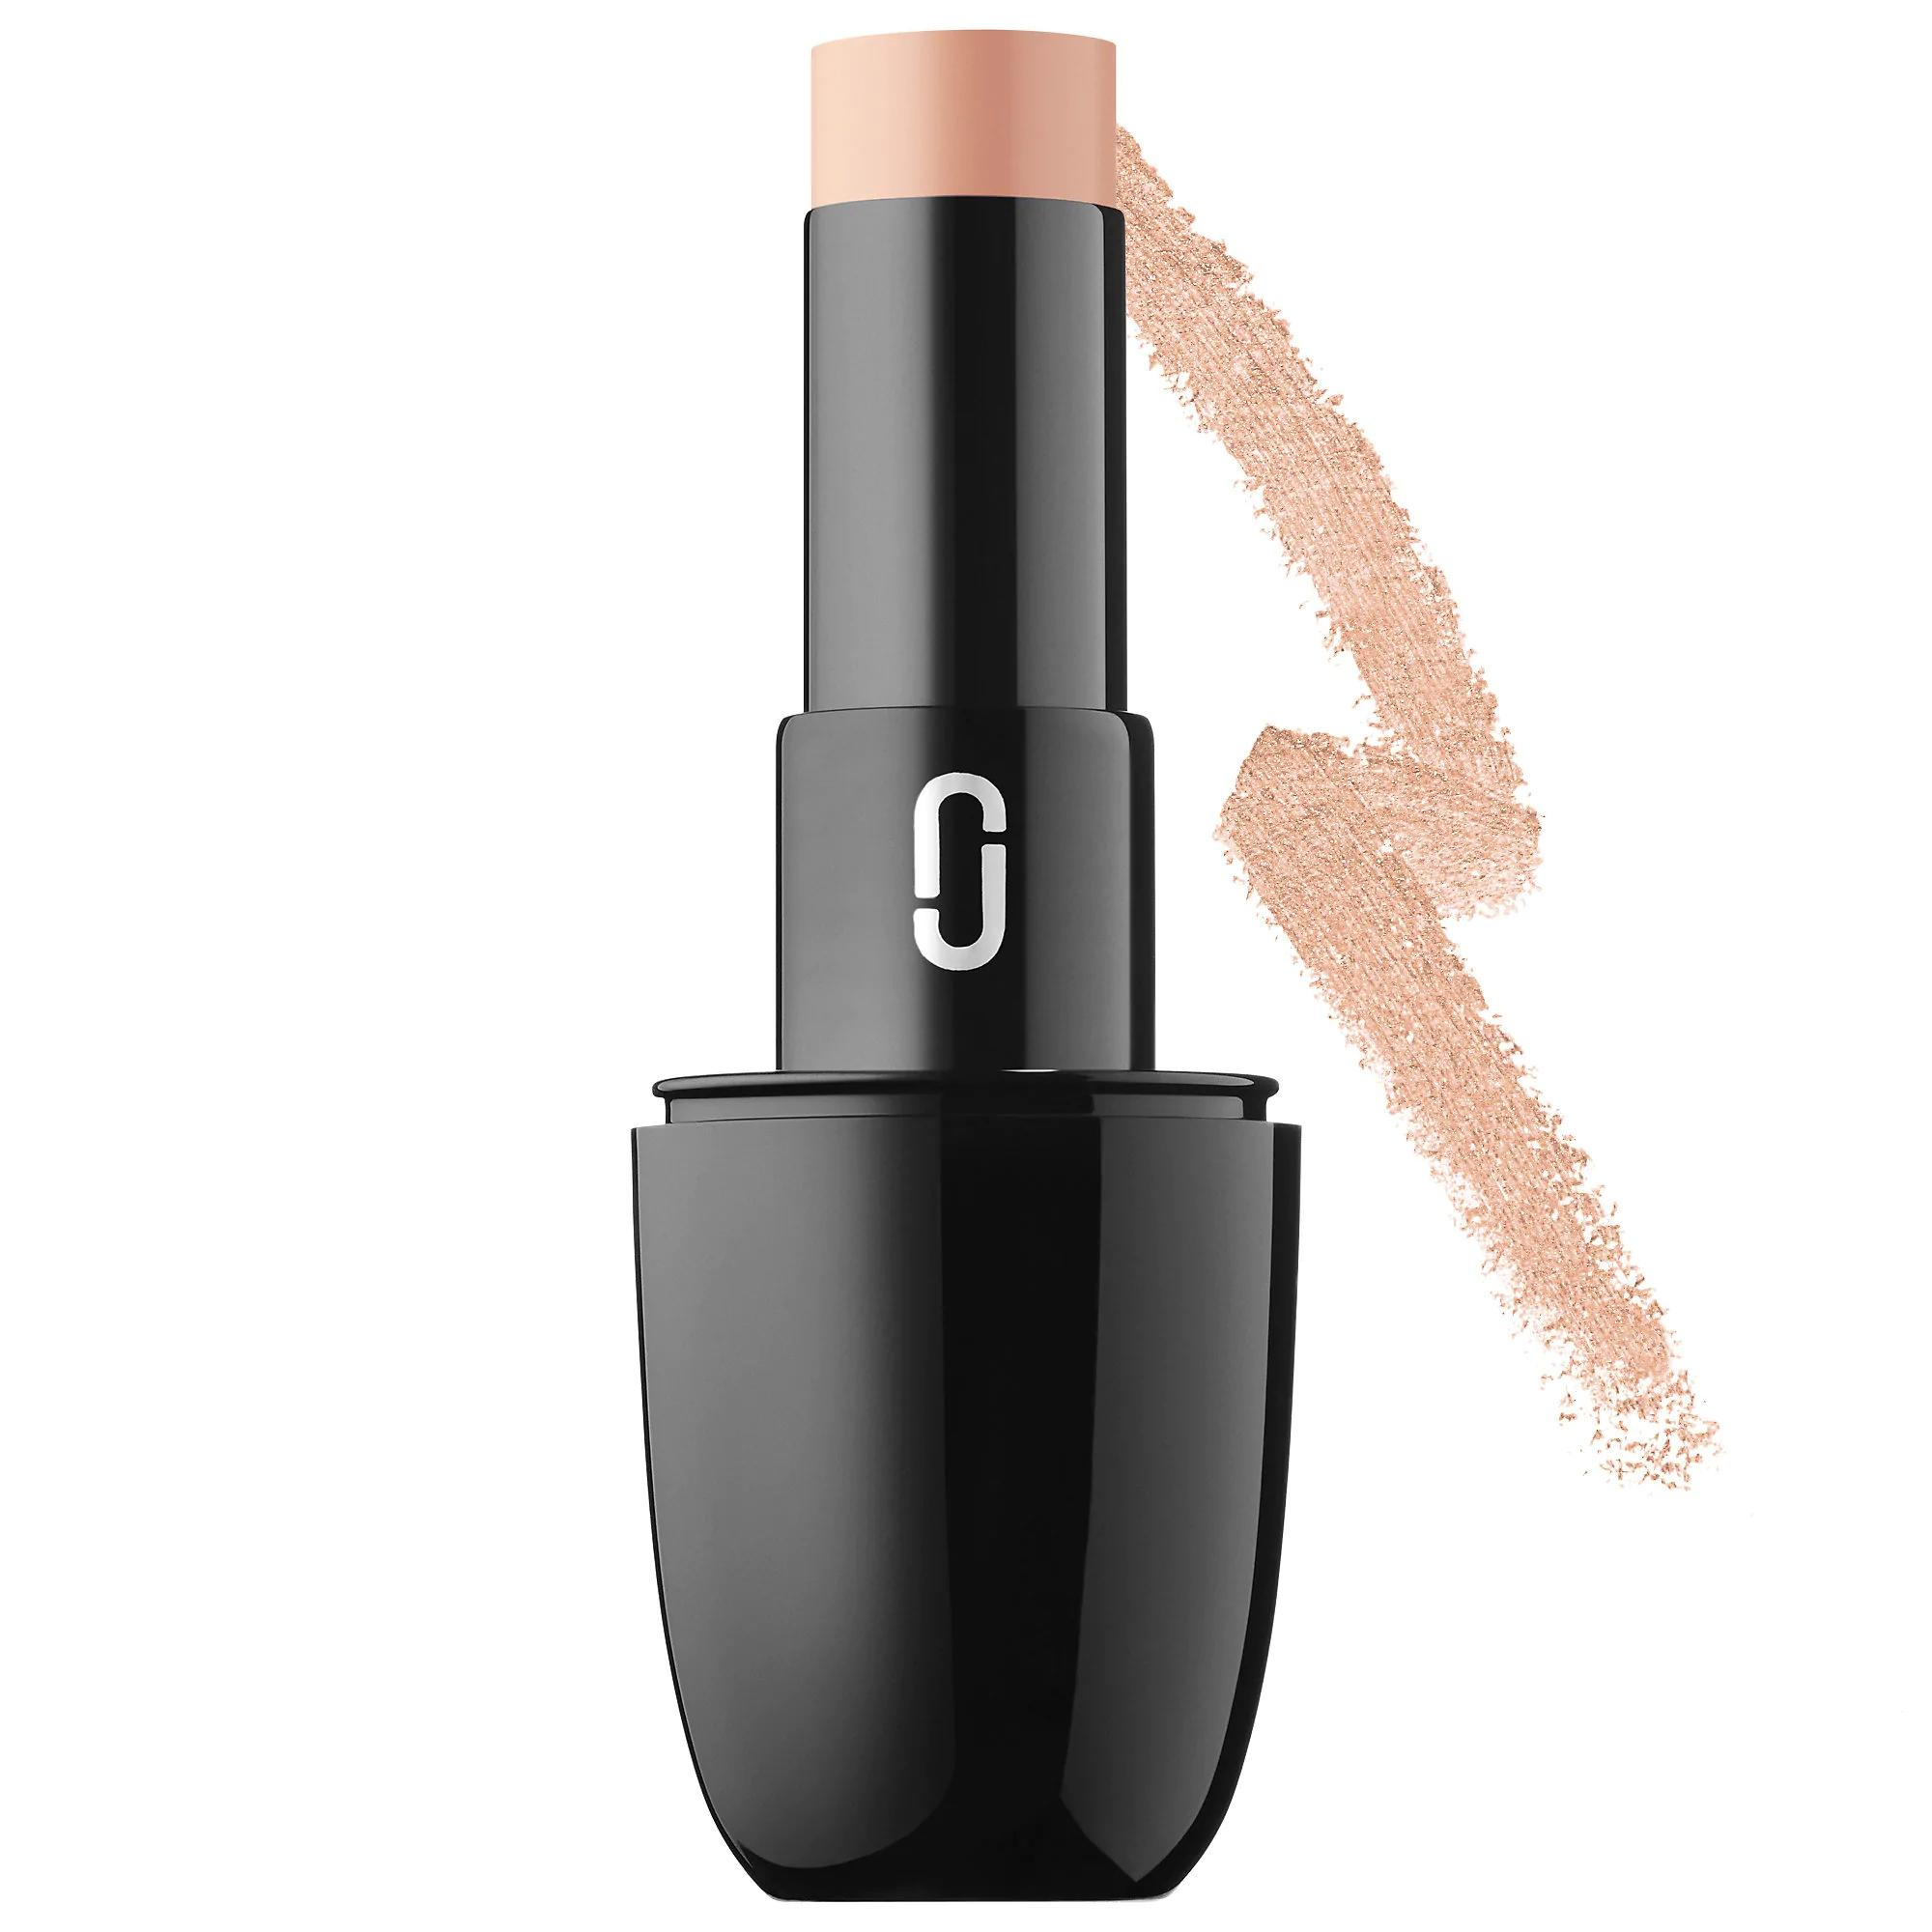 Marc Jacobs Accomplice Concealer & Touch-Up Stick Light 23